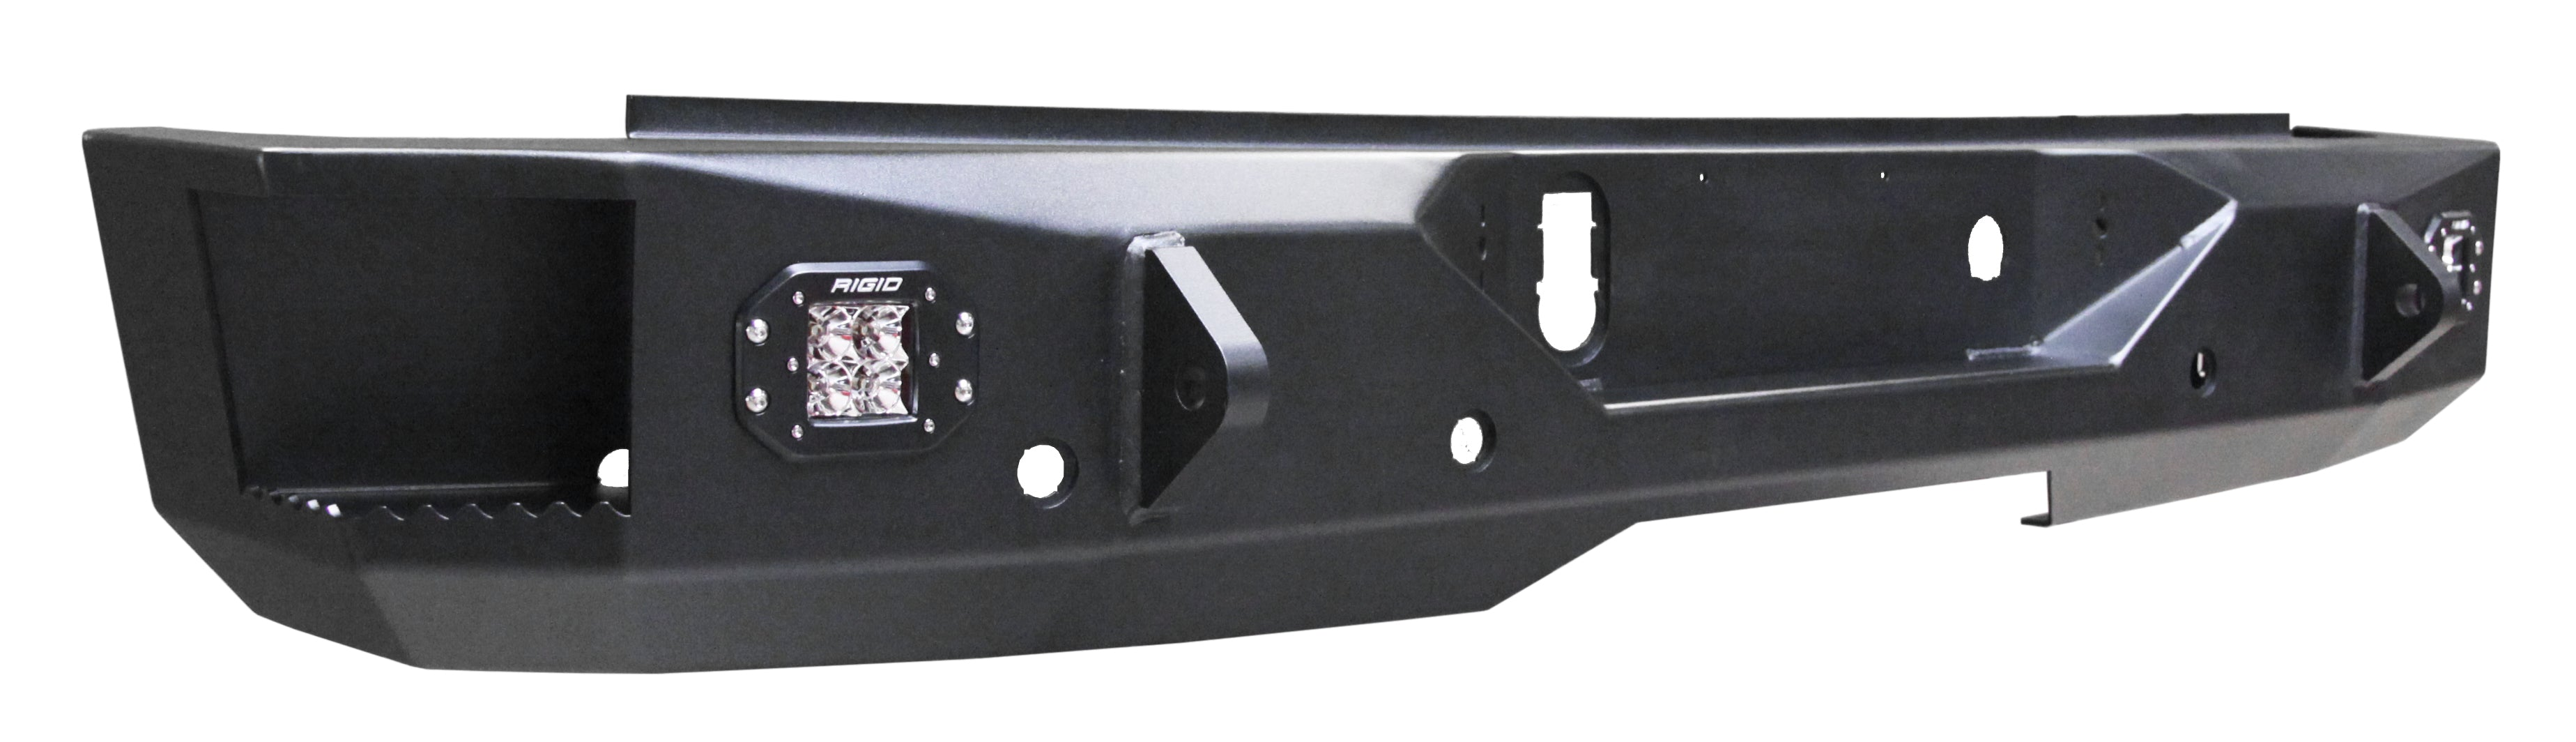 GMC - 2500/3500 (2015-2019) Rear Bumper